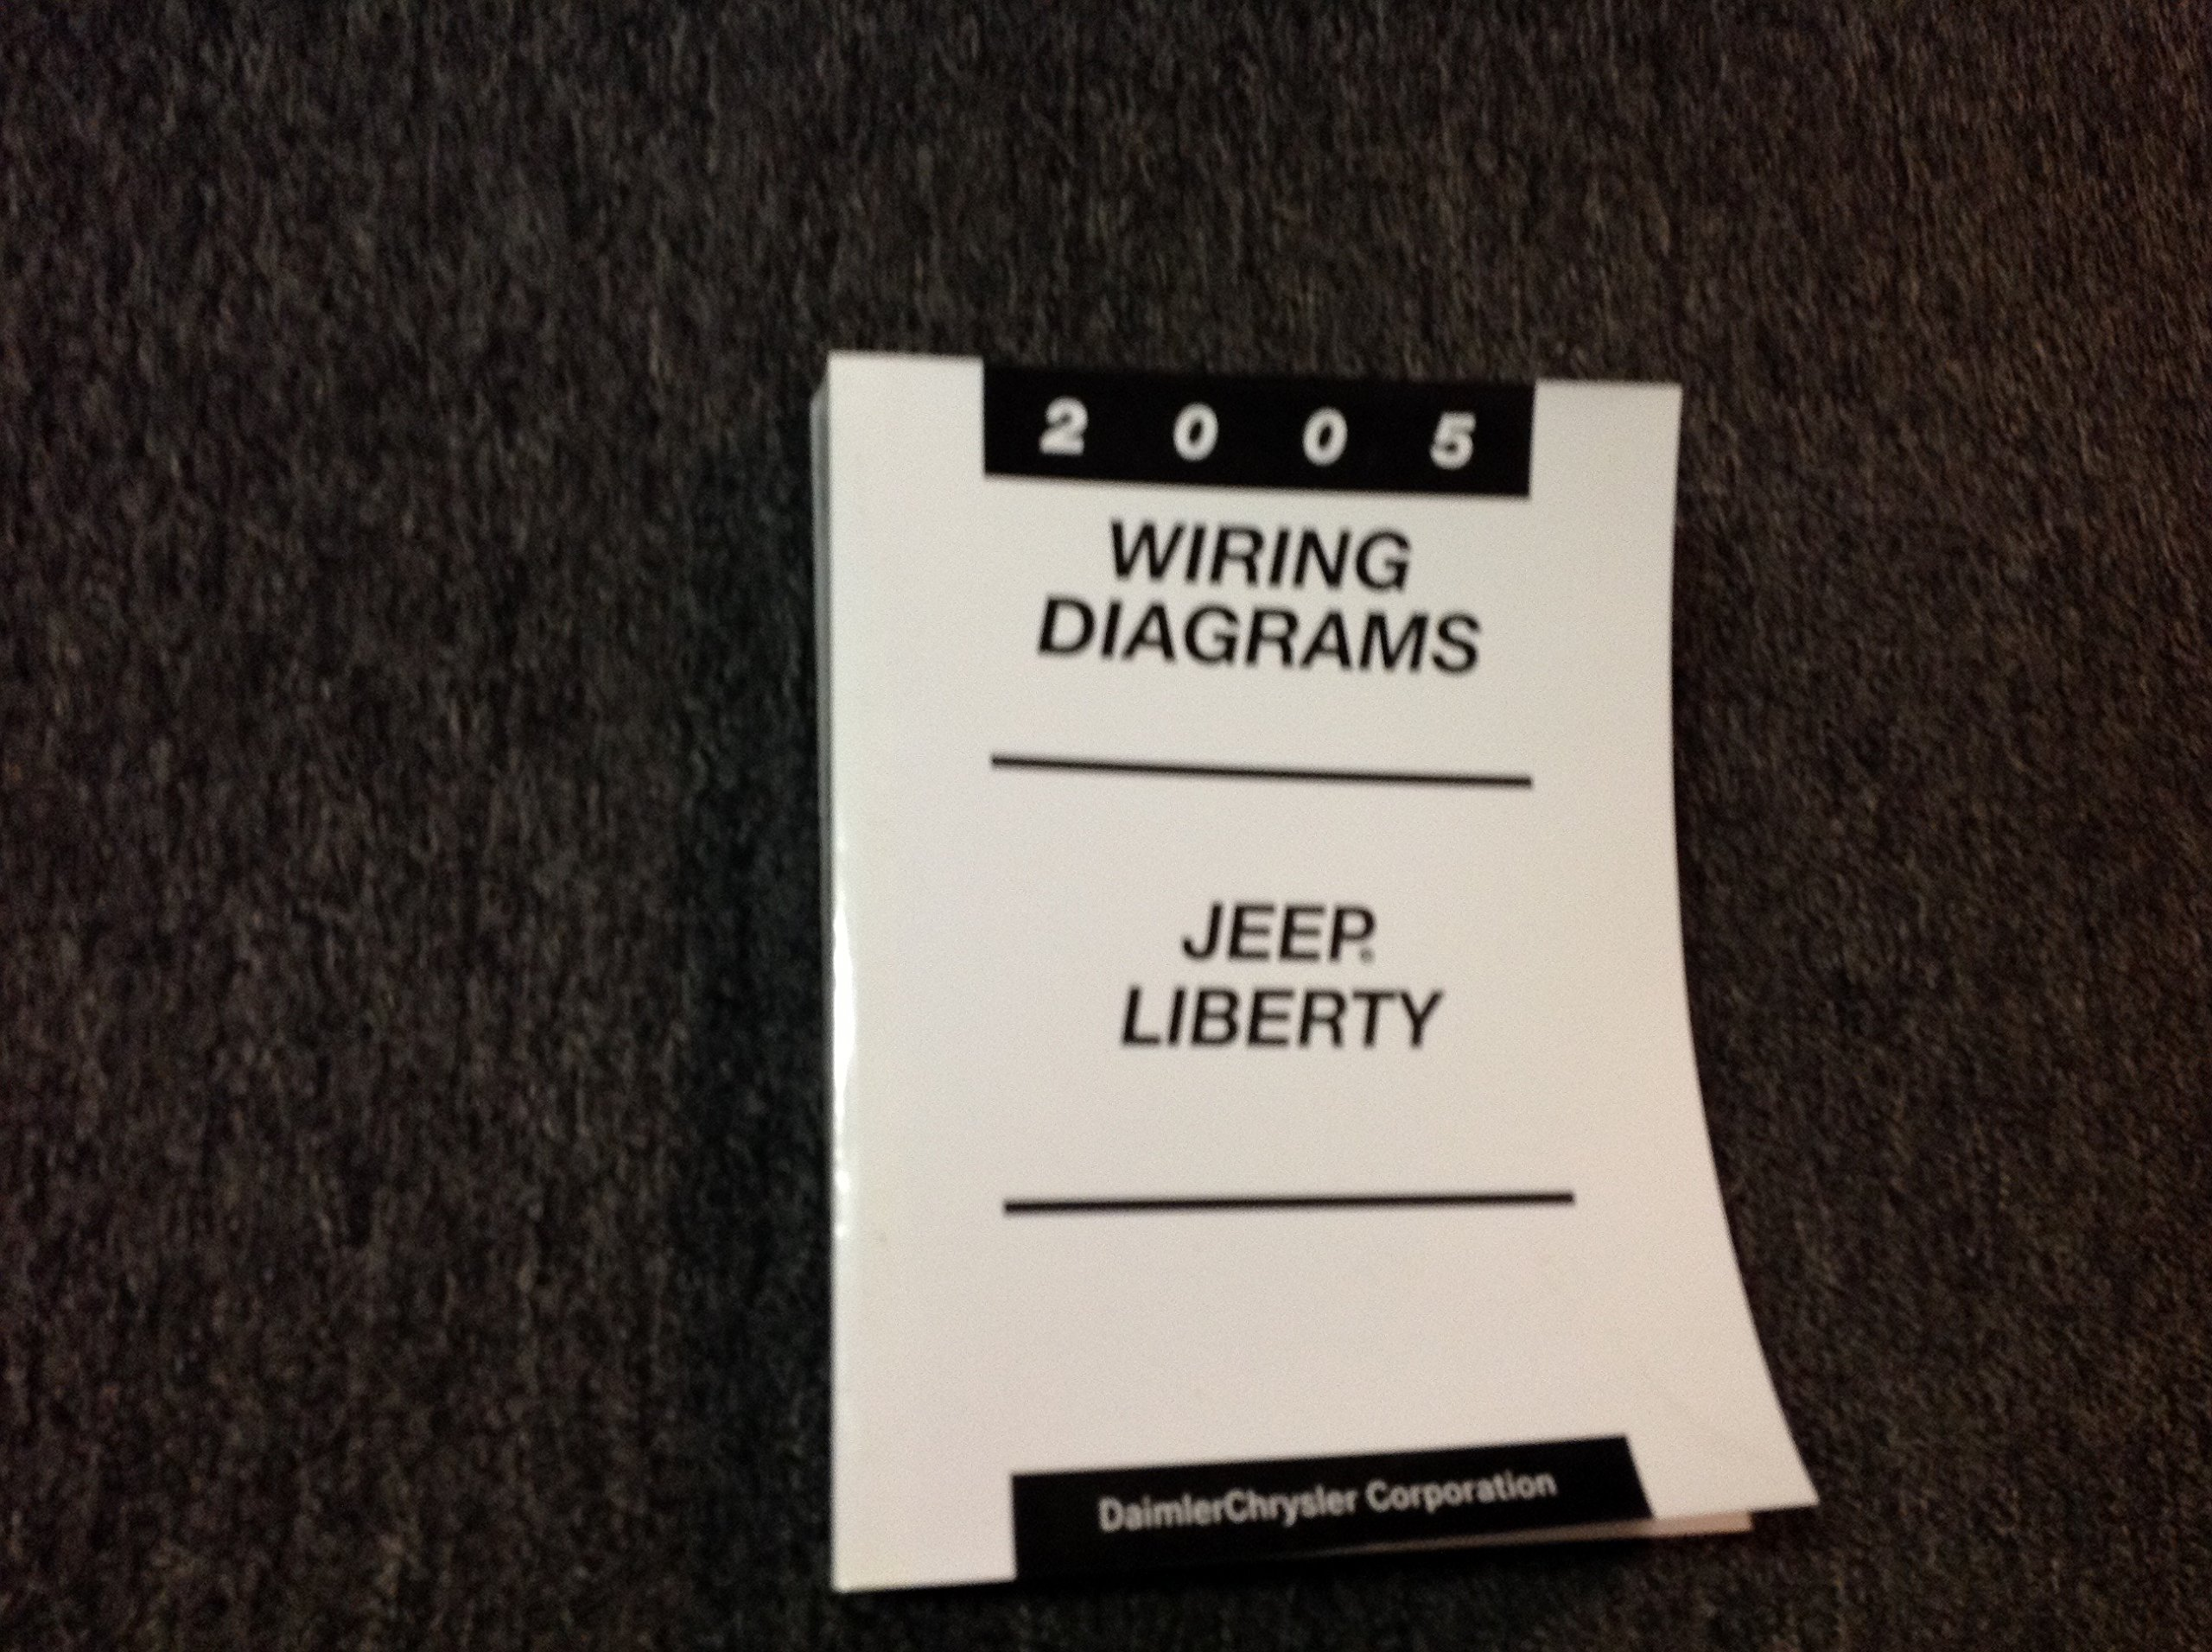 jeep liberty wiring diagram 2005 jeep liberty electrical wiring diagrams troubleshooting ewd 2008 jeep liberty wiring diagram 2005 jeep liberty electrical wiring